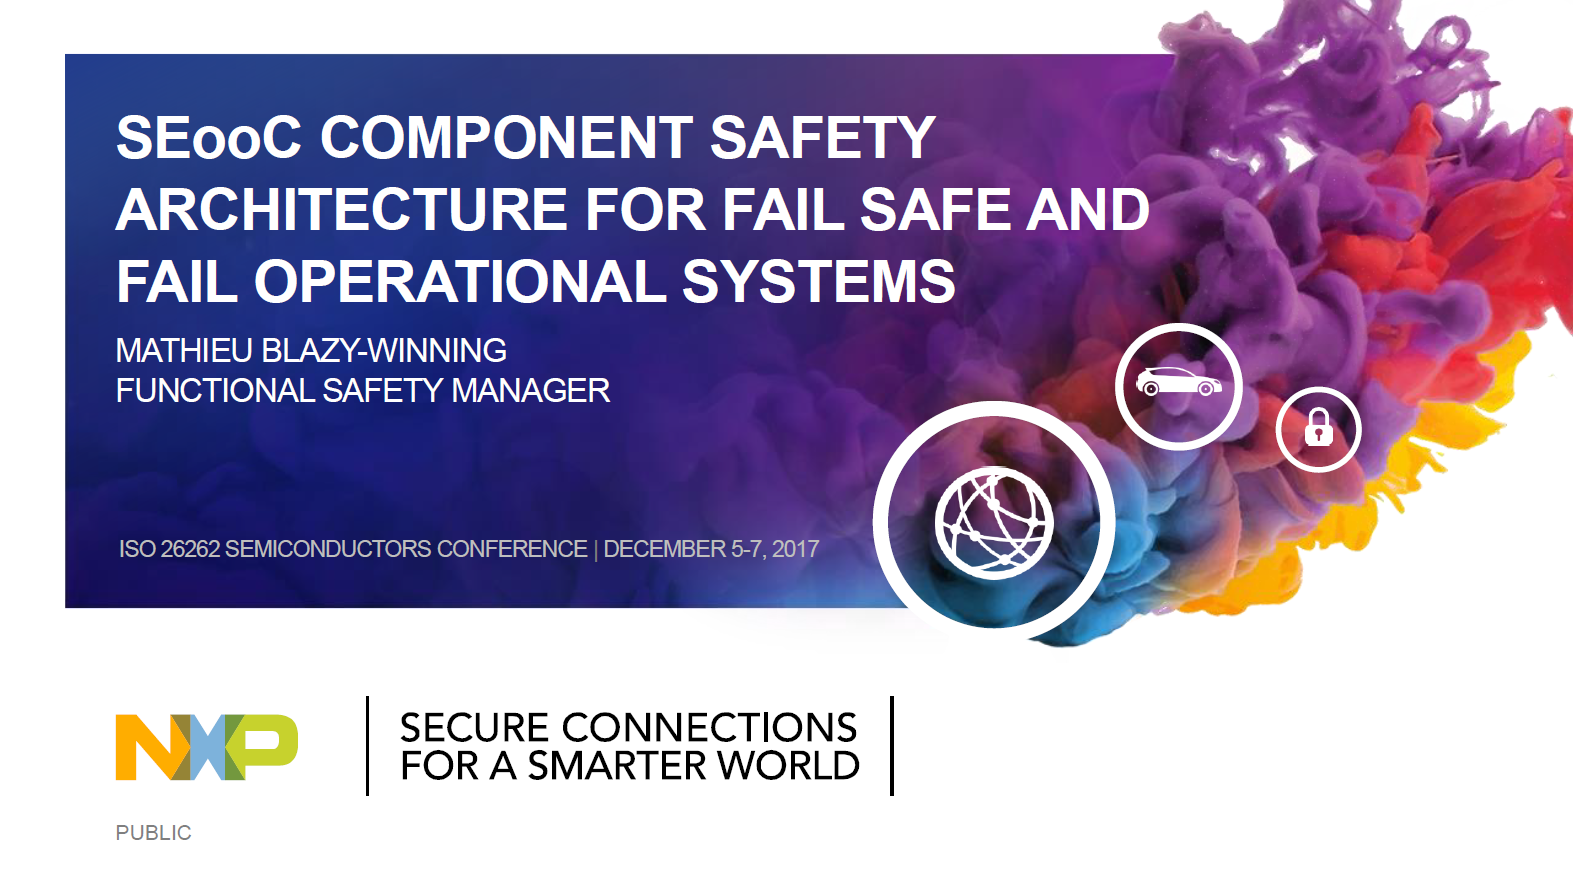 NXP presentation on SEooC component safety architectures for fail safe and fail operational systems